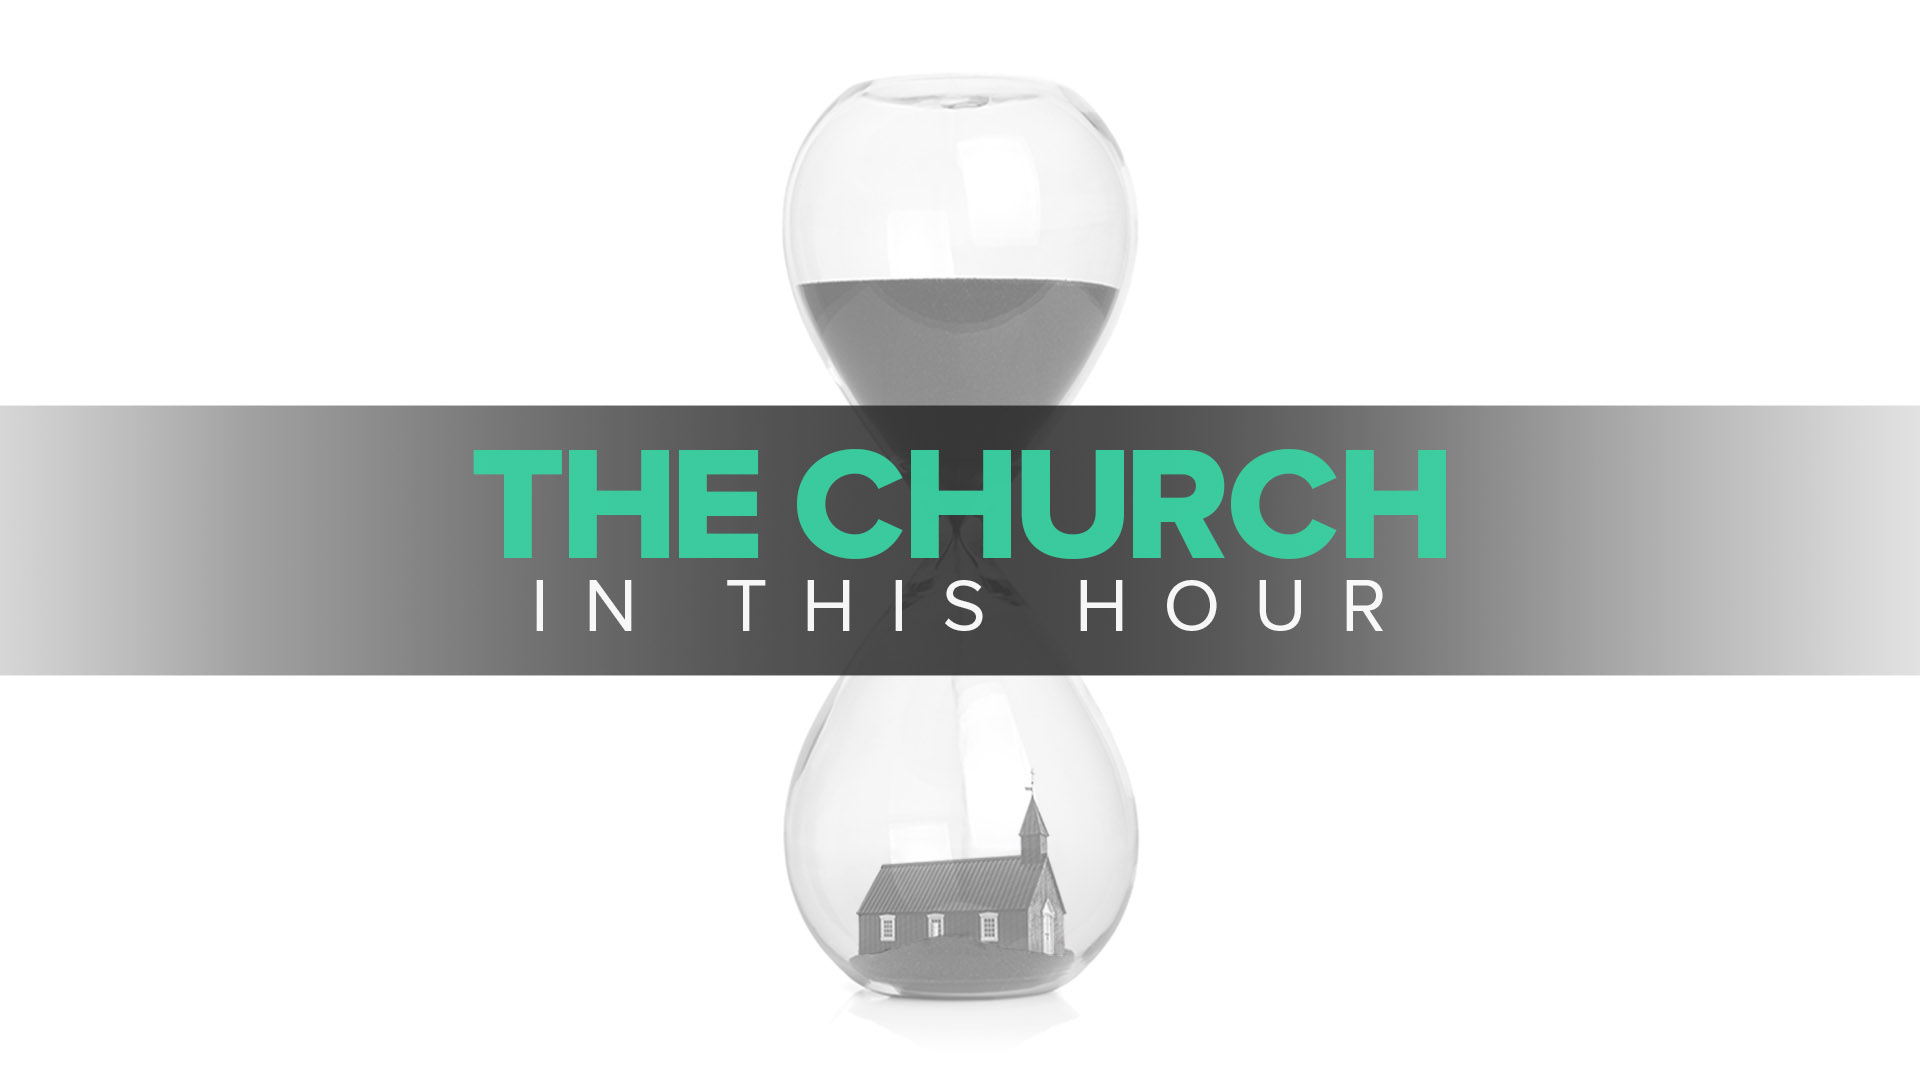 The Church In This Hour - Banner - Picture of House in Hourglass